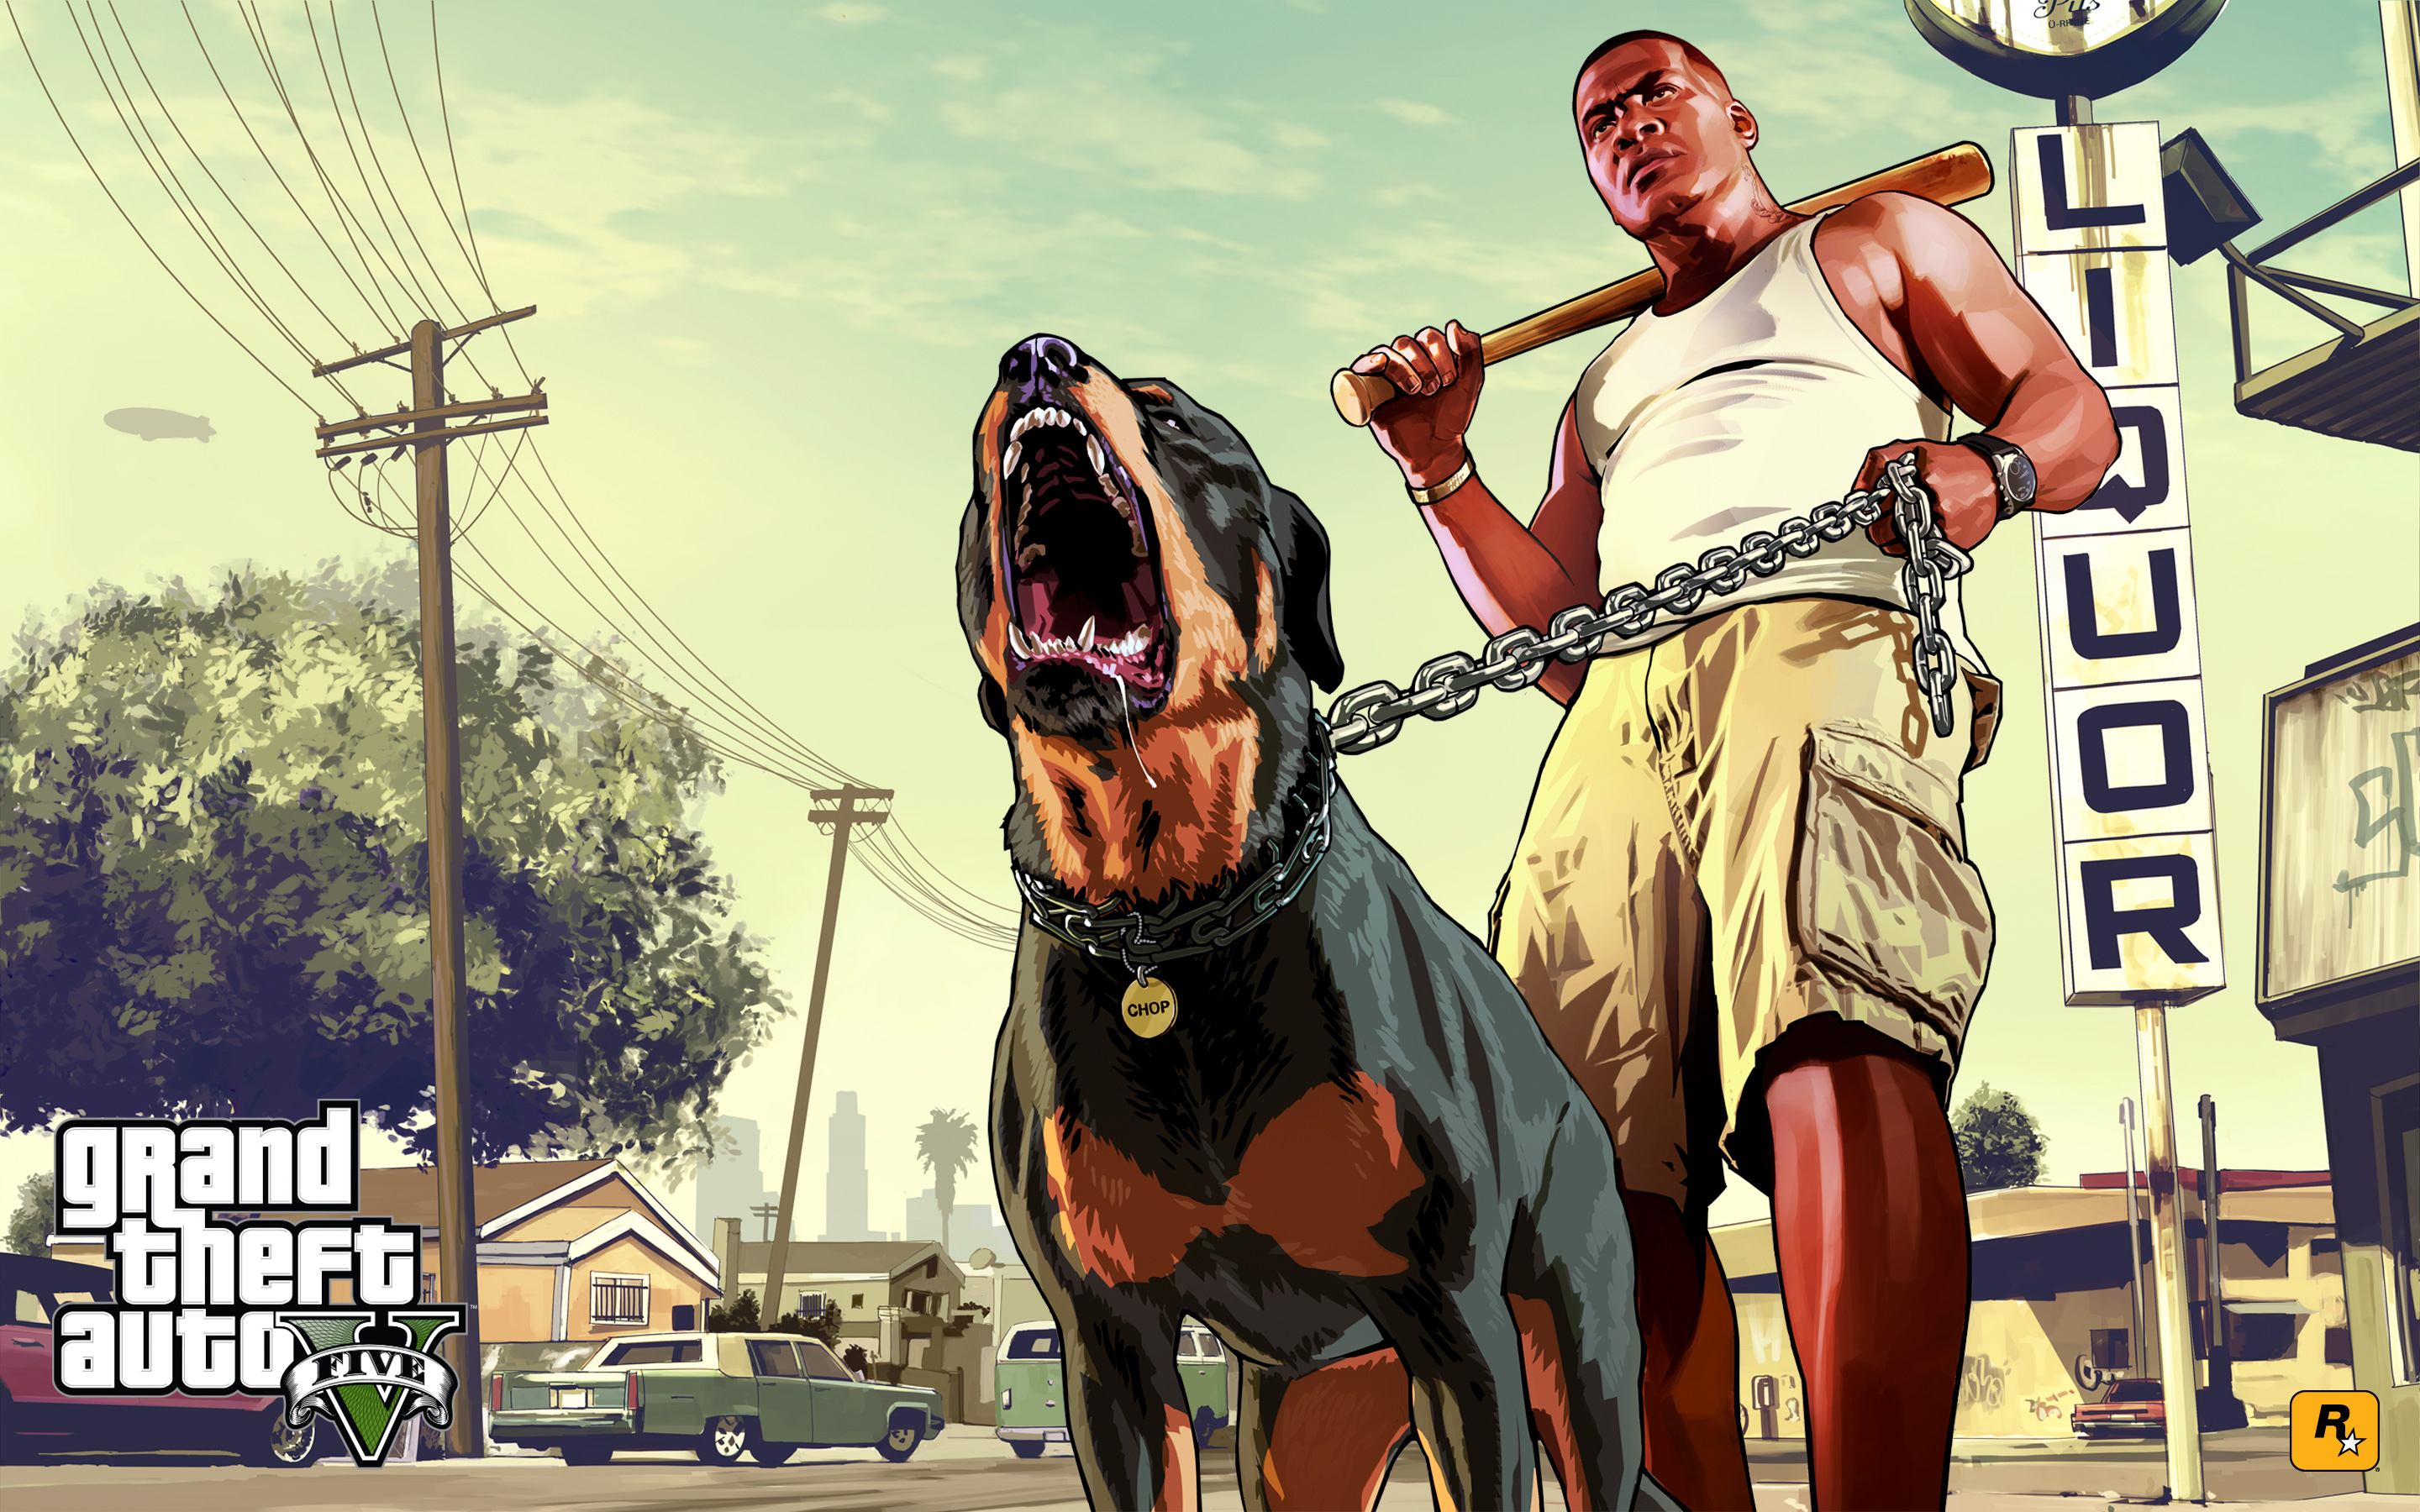 487 grand theft auto v hd wallpapers | background images - wallpaper